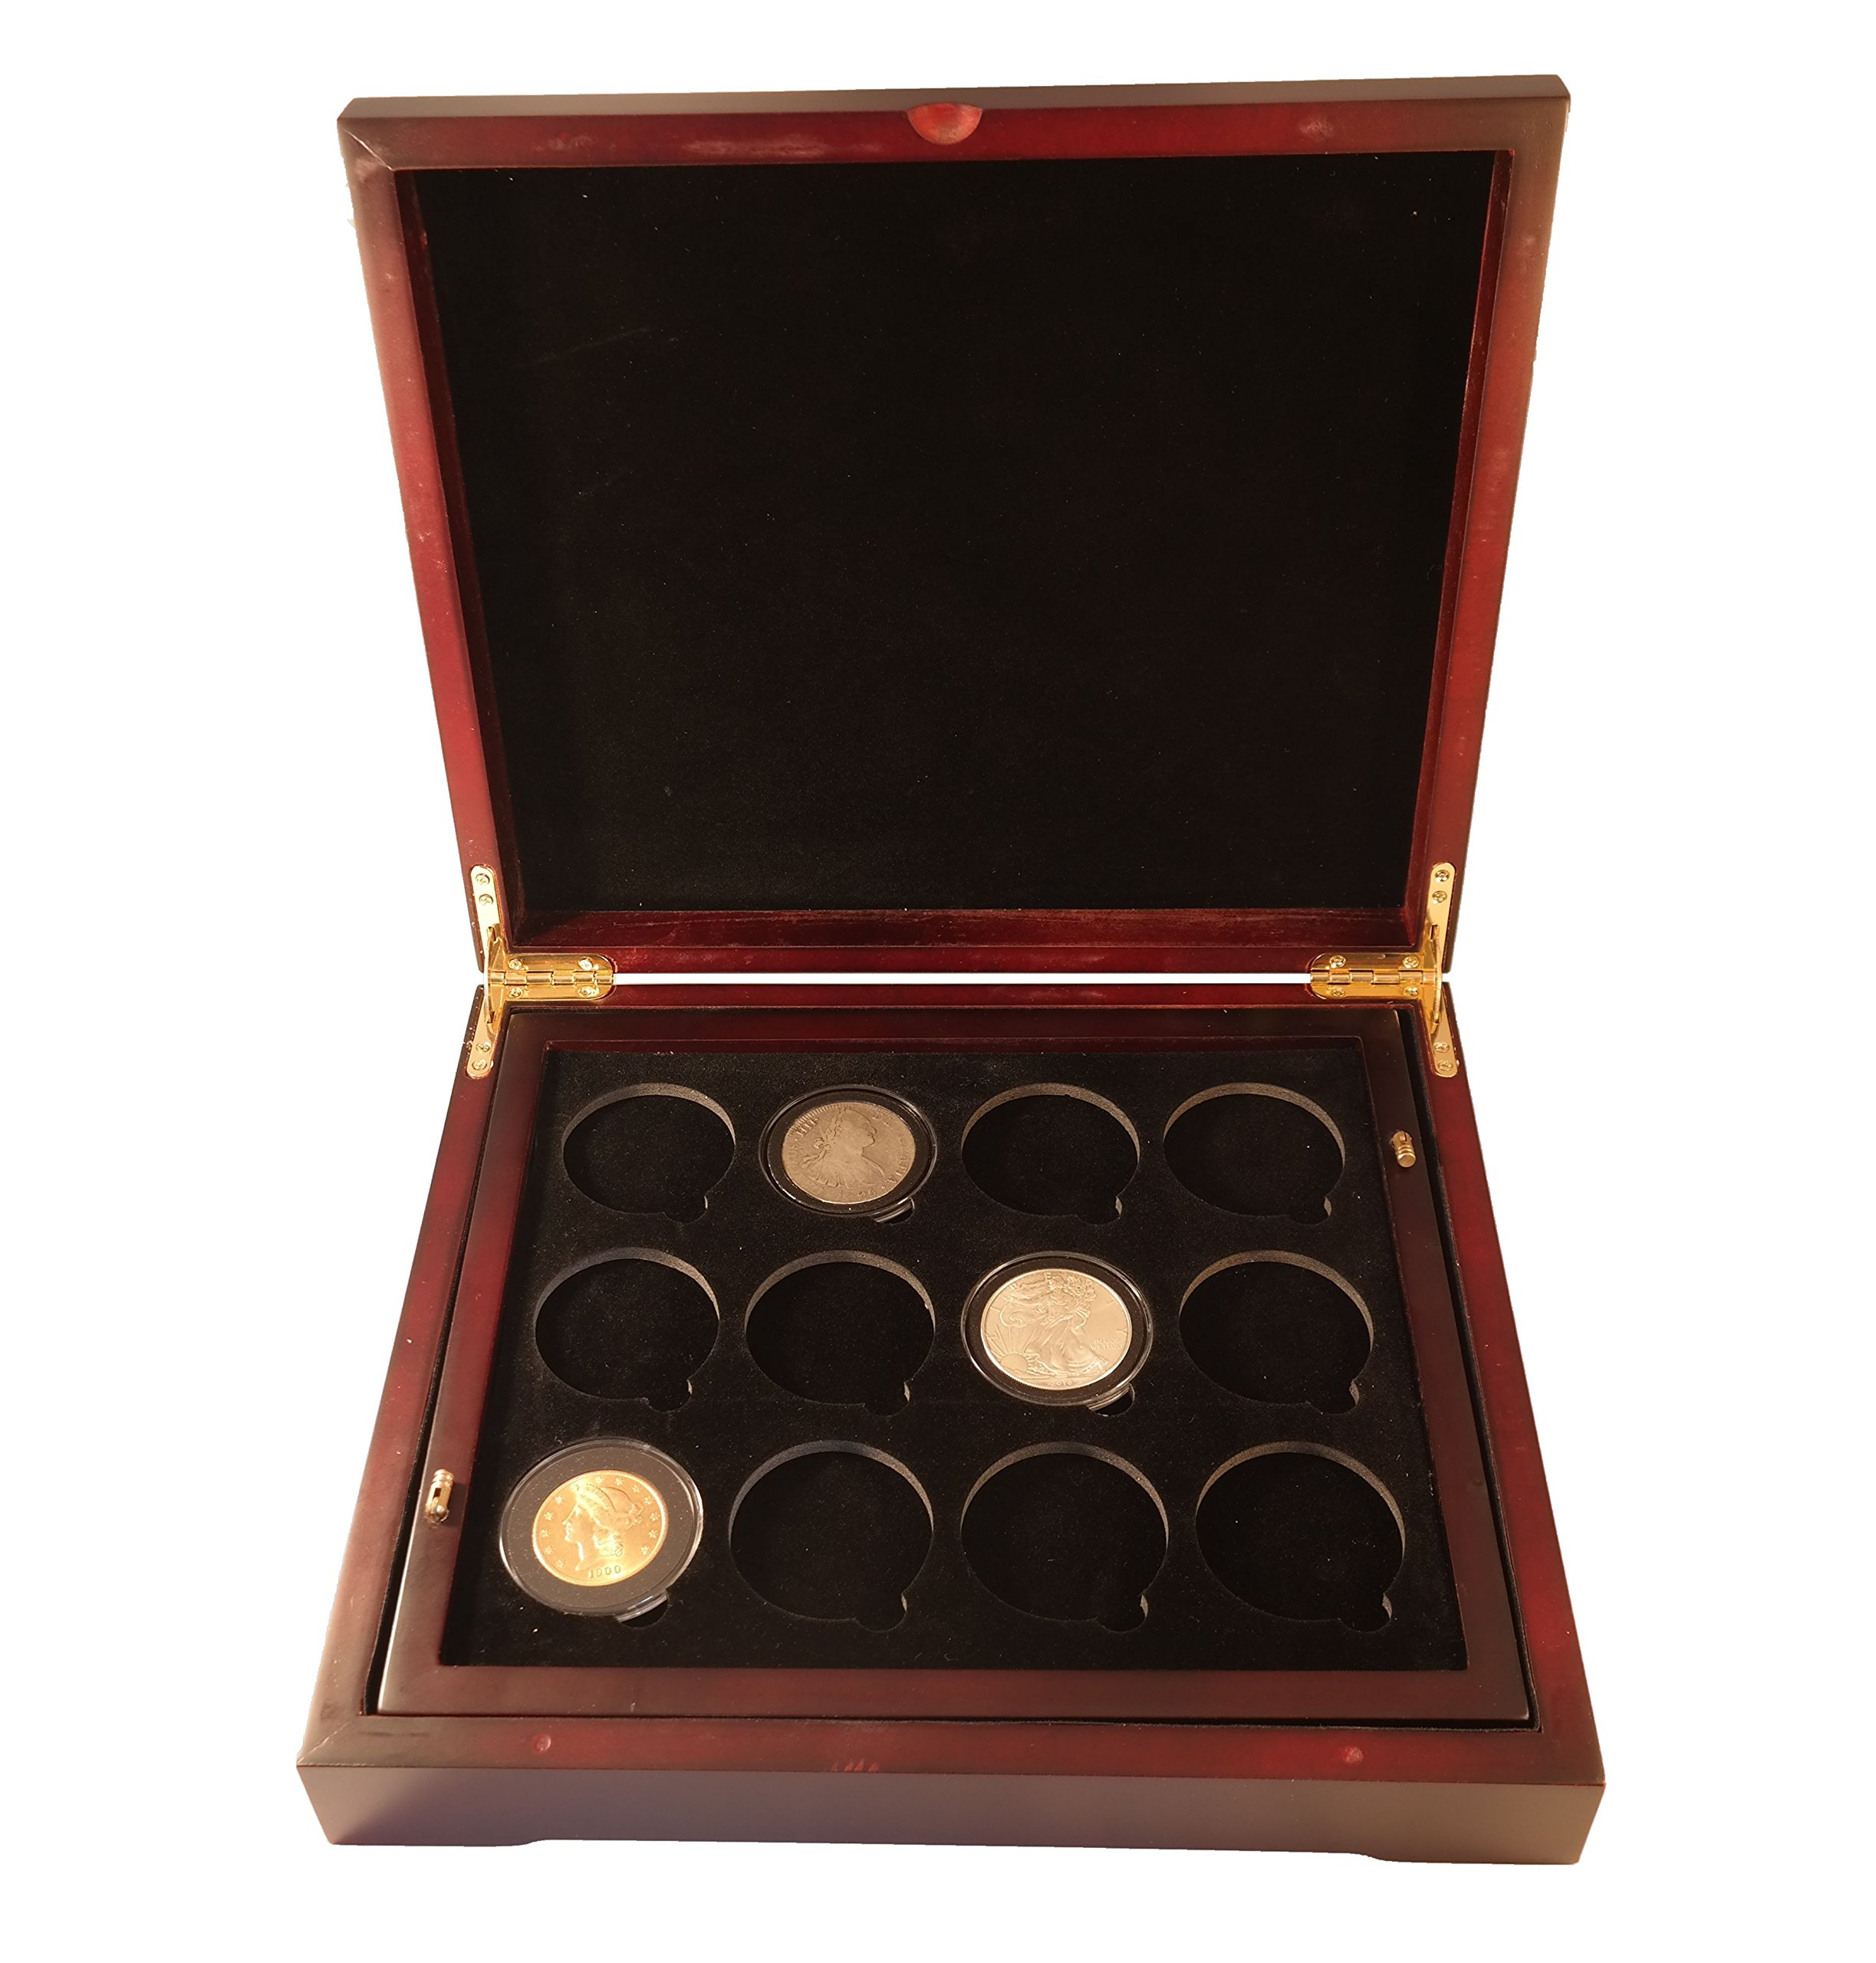 Coin Tray for 12 Extra Large or Air-Tite ''I'' Capsules / 2'' Challenge Coins fits in Mahogany Finish Wood Display Case by Guardhouse (Image #5)